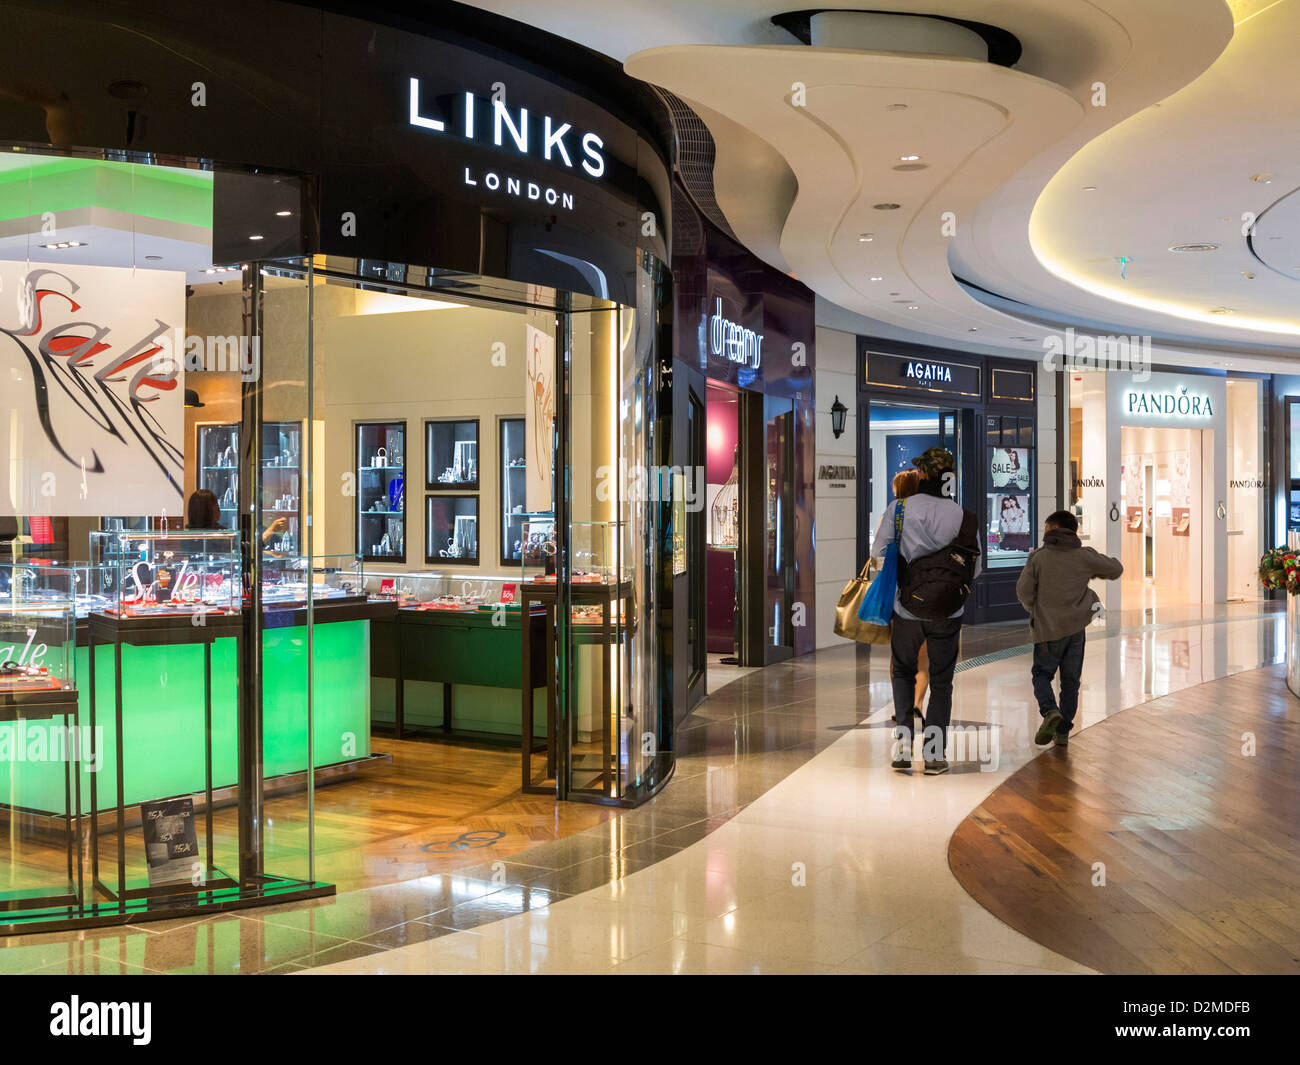 Links of London store in the Hysan Place Shopping Centre, Hong Kong - Stock Image